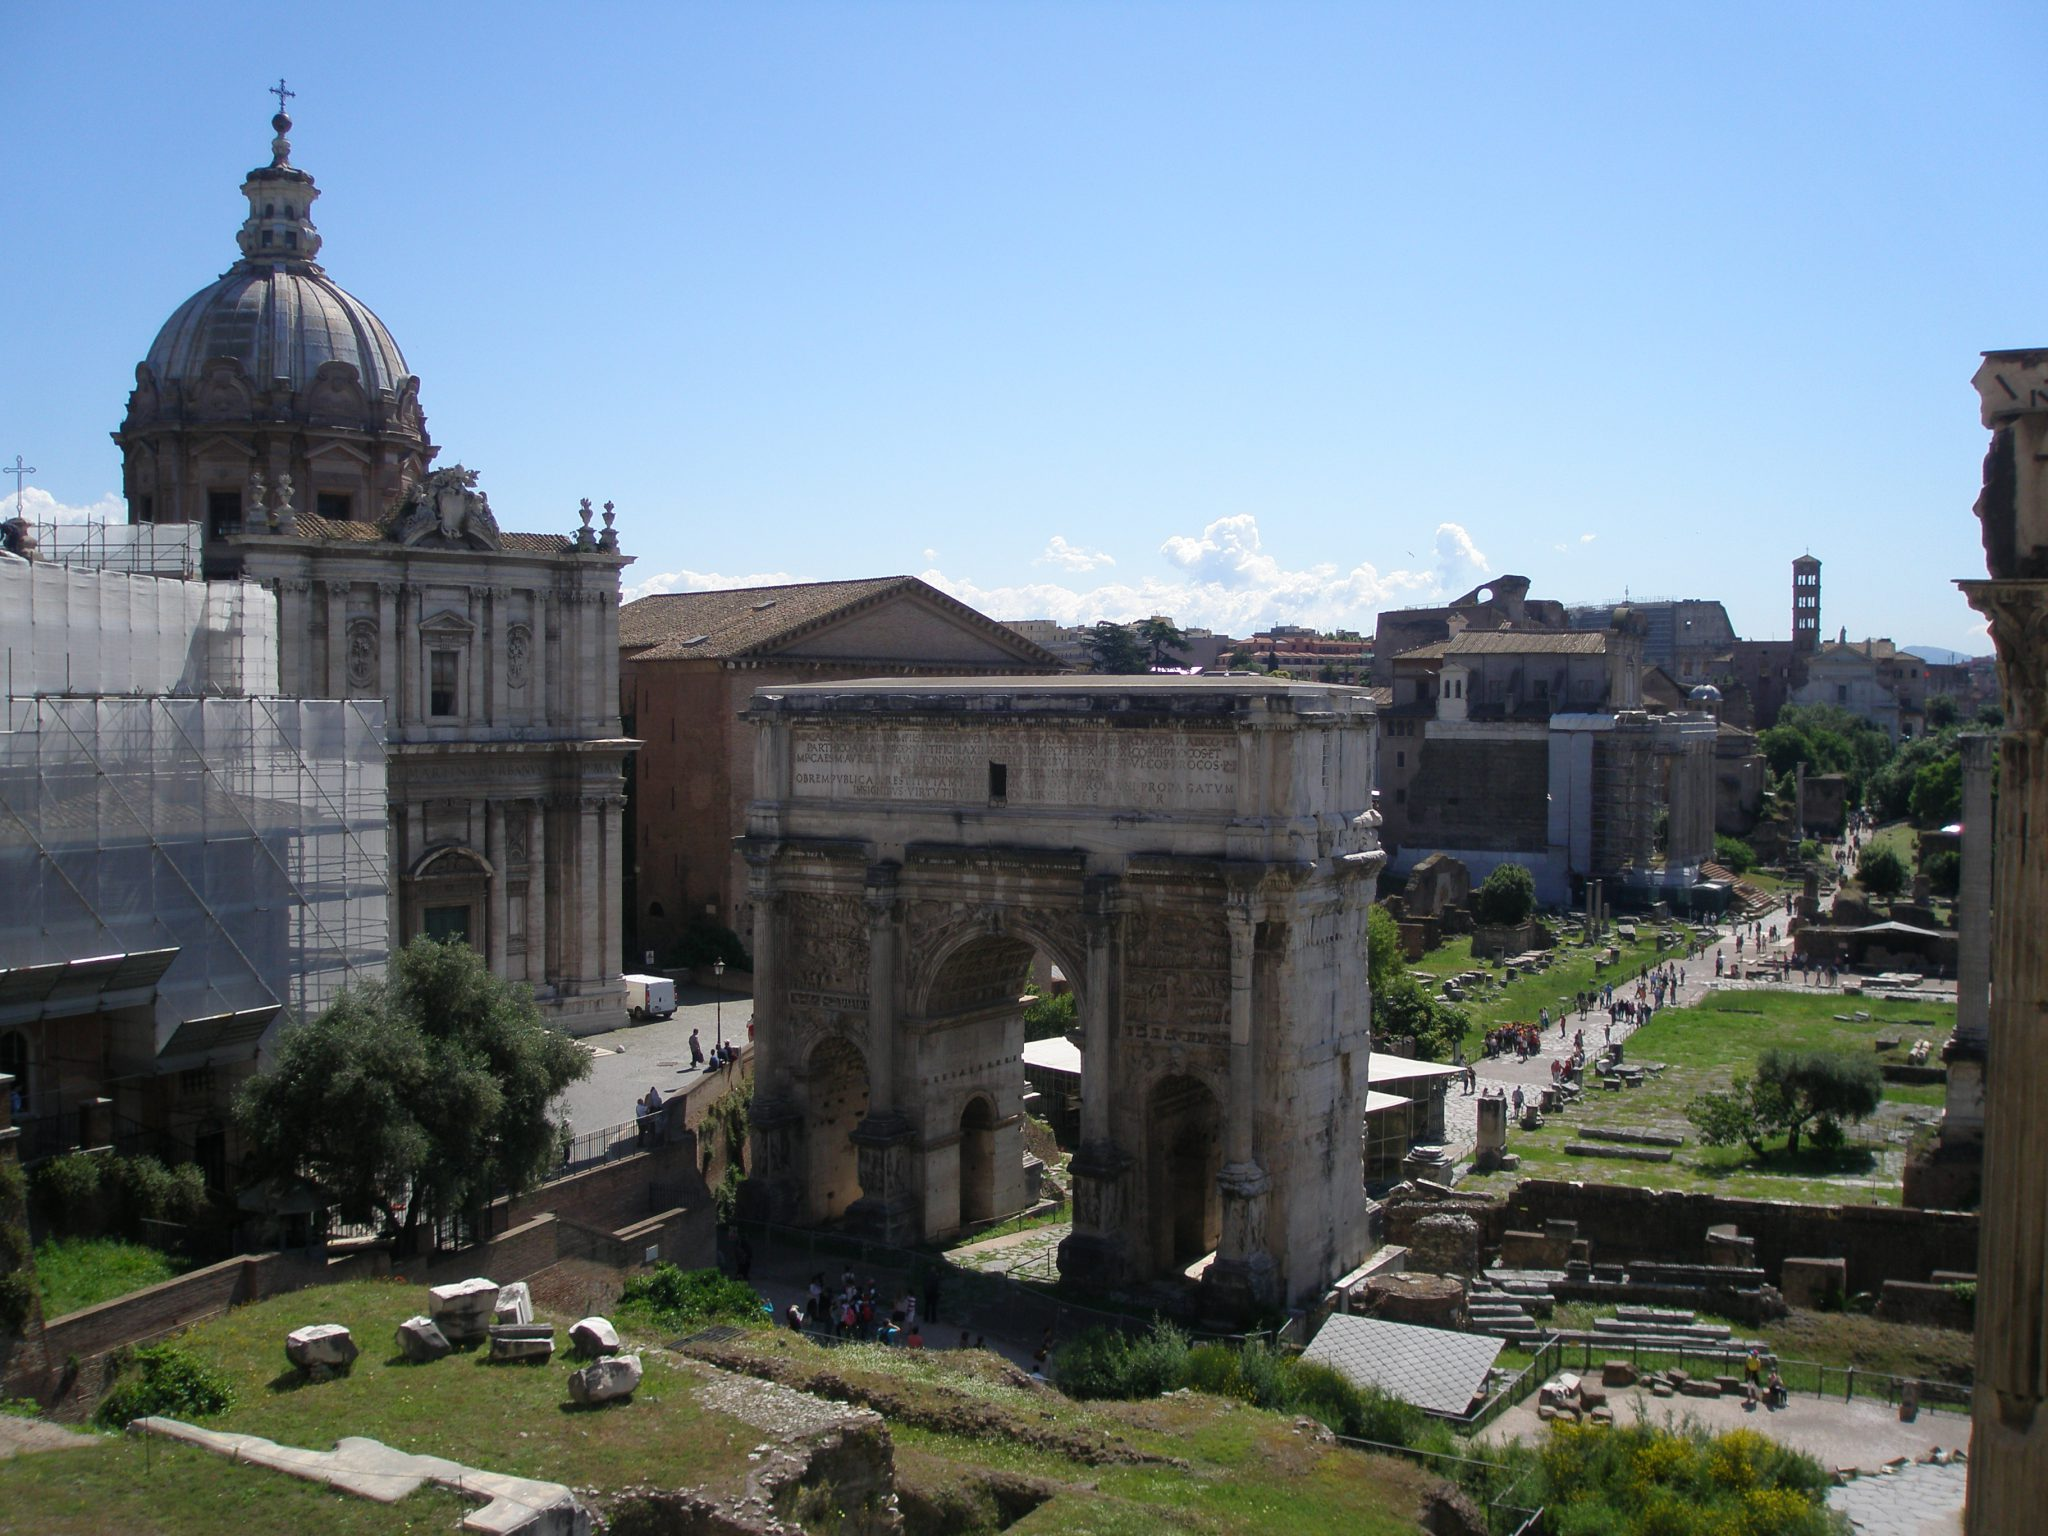 Upon entering the Tabularium's Gallery, this is one's first view of the Roman Forum: The Arch of Septimus Severus(Arco di Settimio Severo), erected by the Senate & People of Rome in 202AD. To the far left: the imposing dome of the Church of Santi Luca e Martina, which is not part of the Forum. A church has occupied this site since 228AD, but the current building is relatively modern...with construction that was begun in 1635.